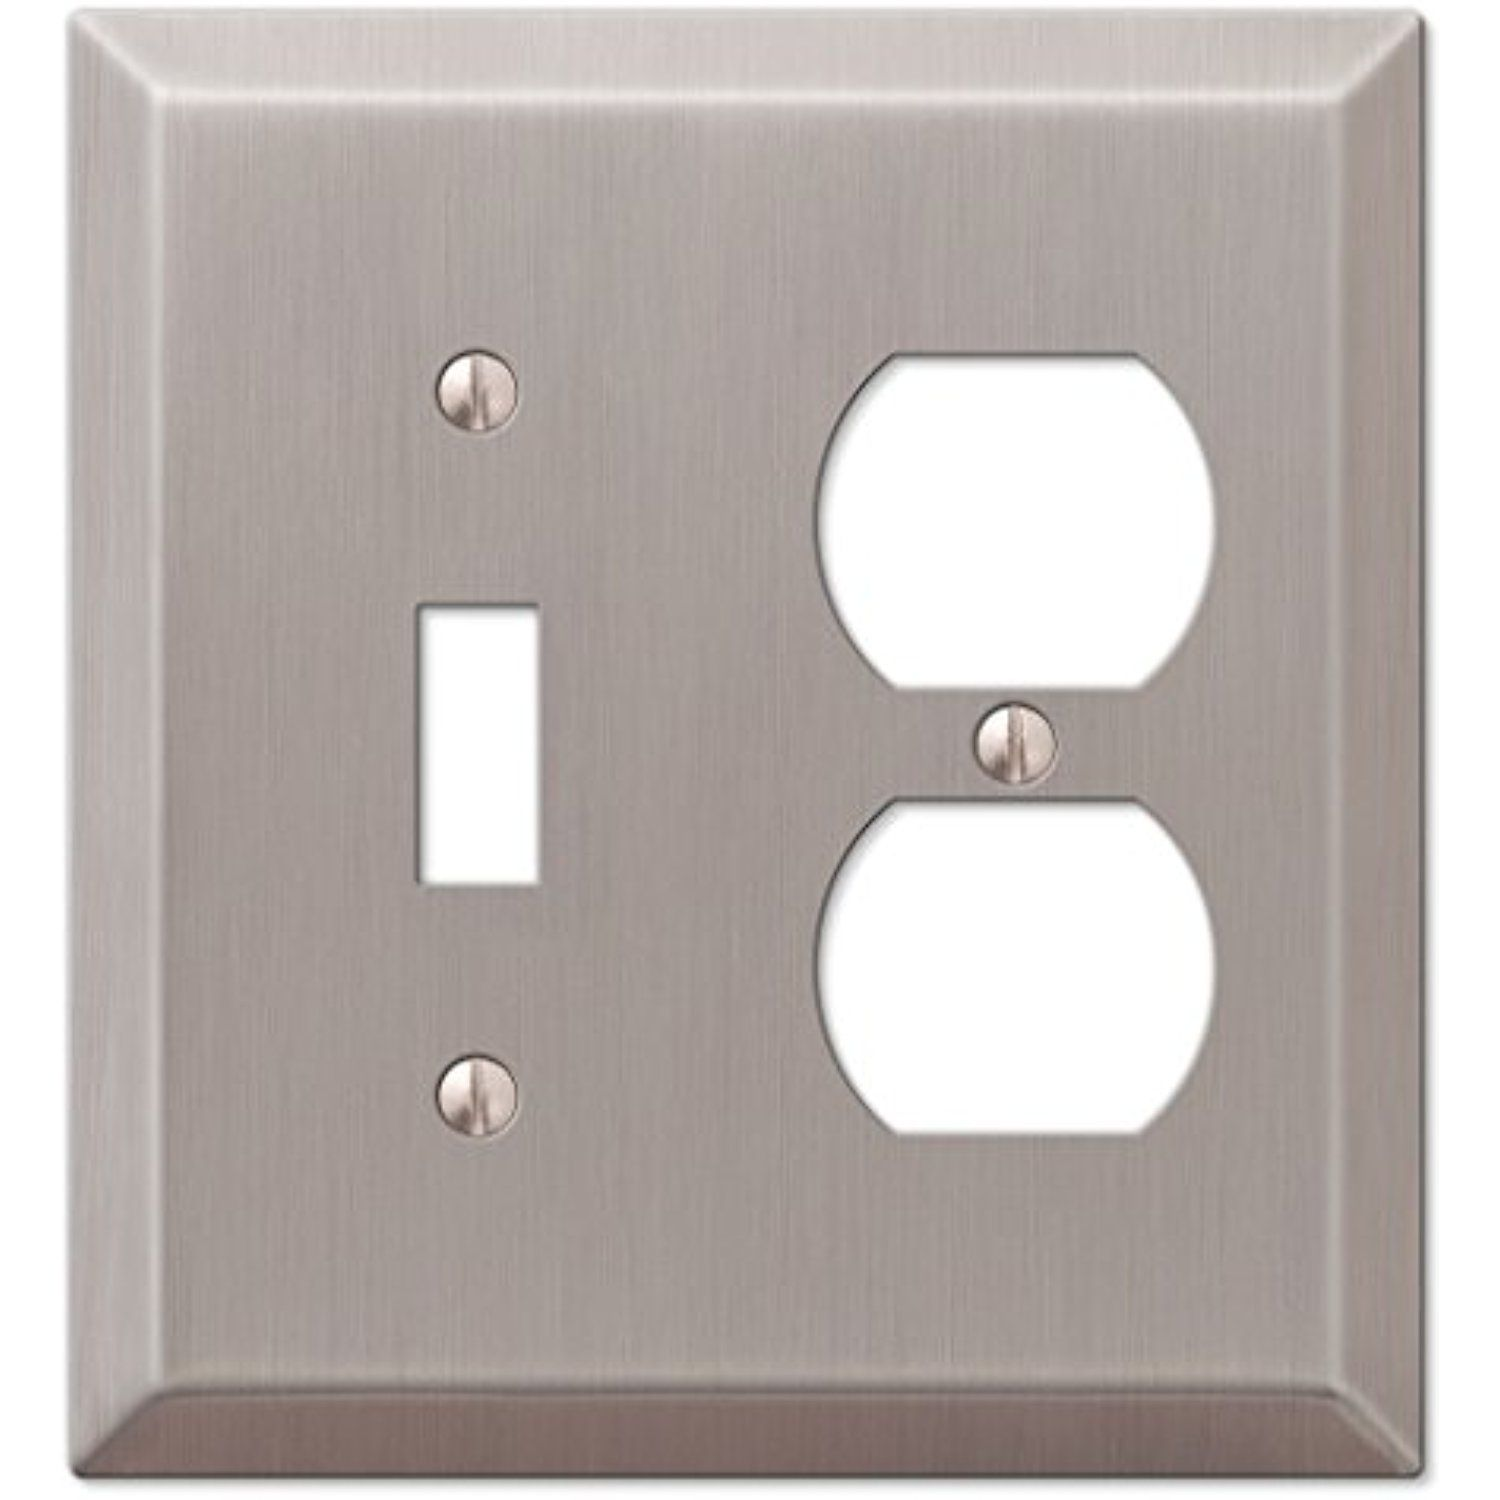 Amerelle 163tdbn Century Brushed Nickel Steel 1 Toggle 1 Duplex Wallplate Check Out This Great Product Thi Plates On Wall Electrical Box Cover Nickel Steel